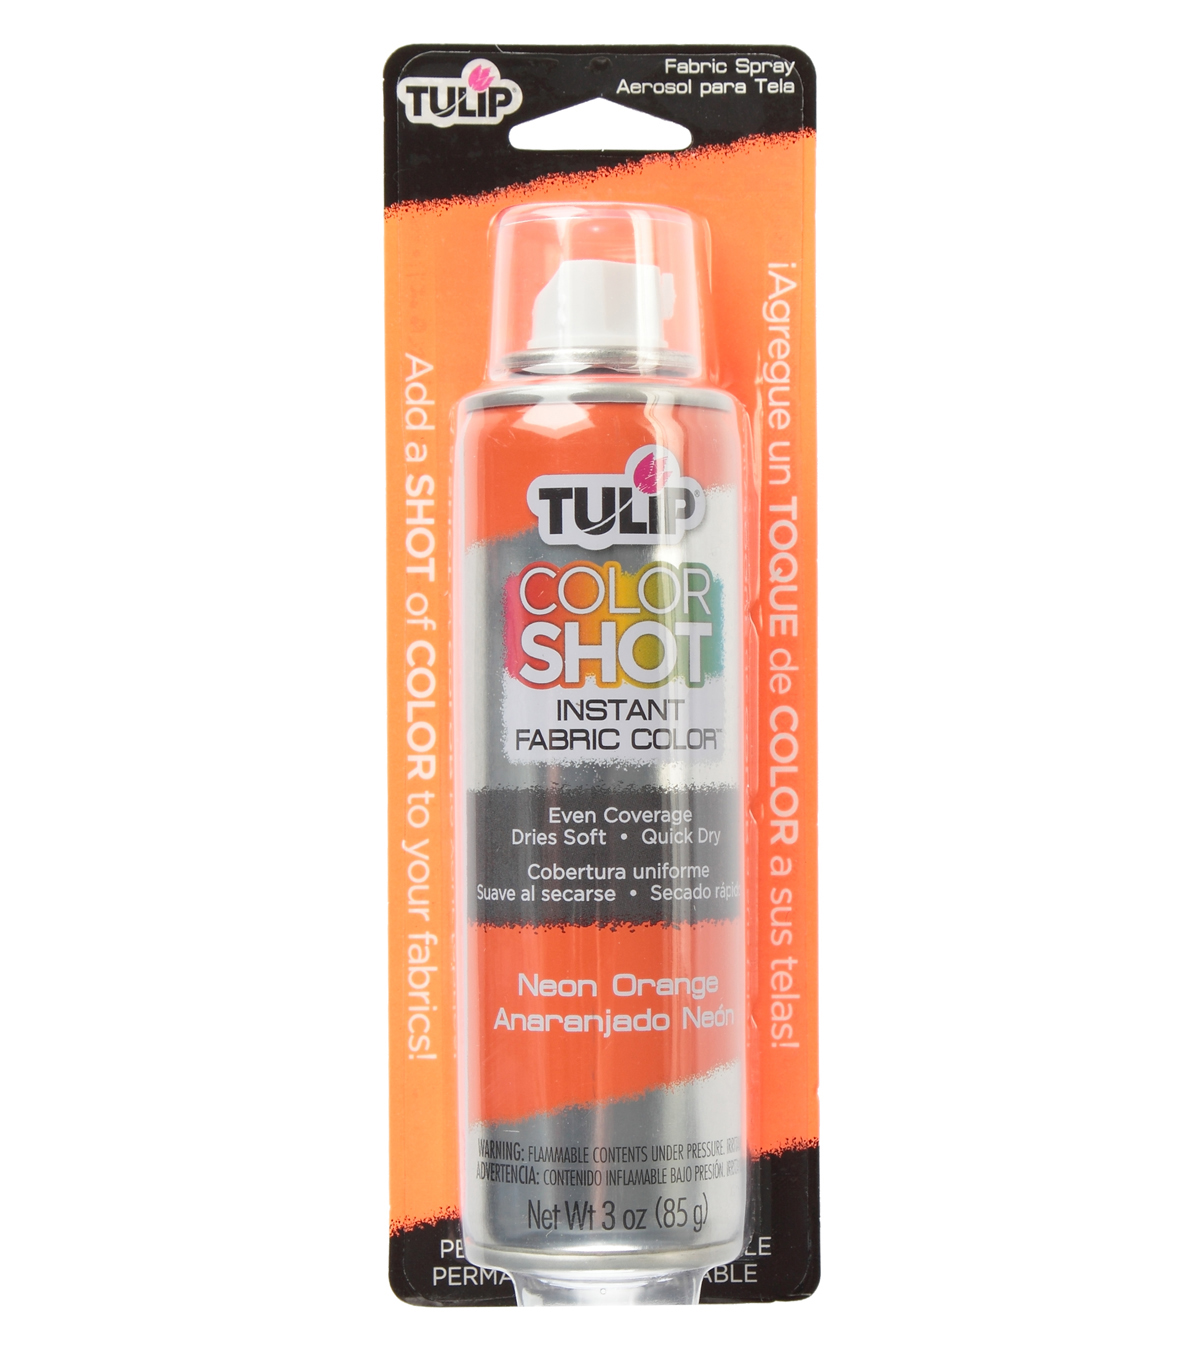 Tulip ColorShot Instant Fabric Color Spray 3oz, Neon Orange